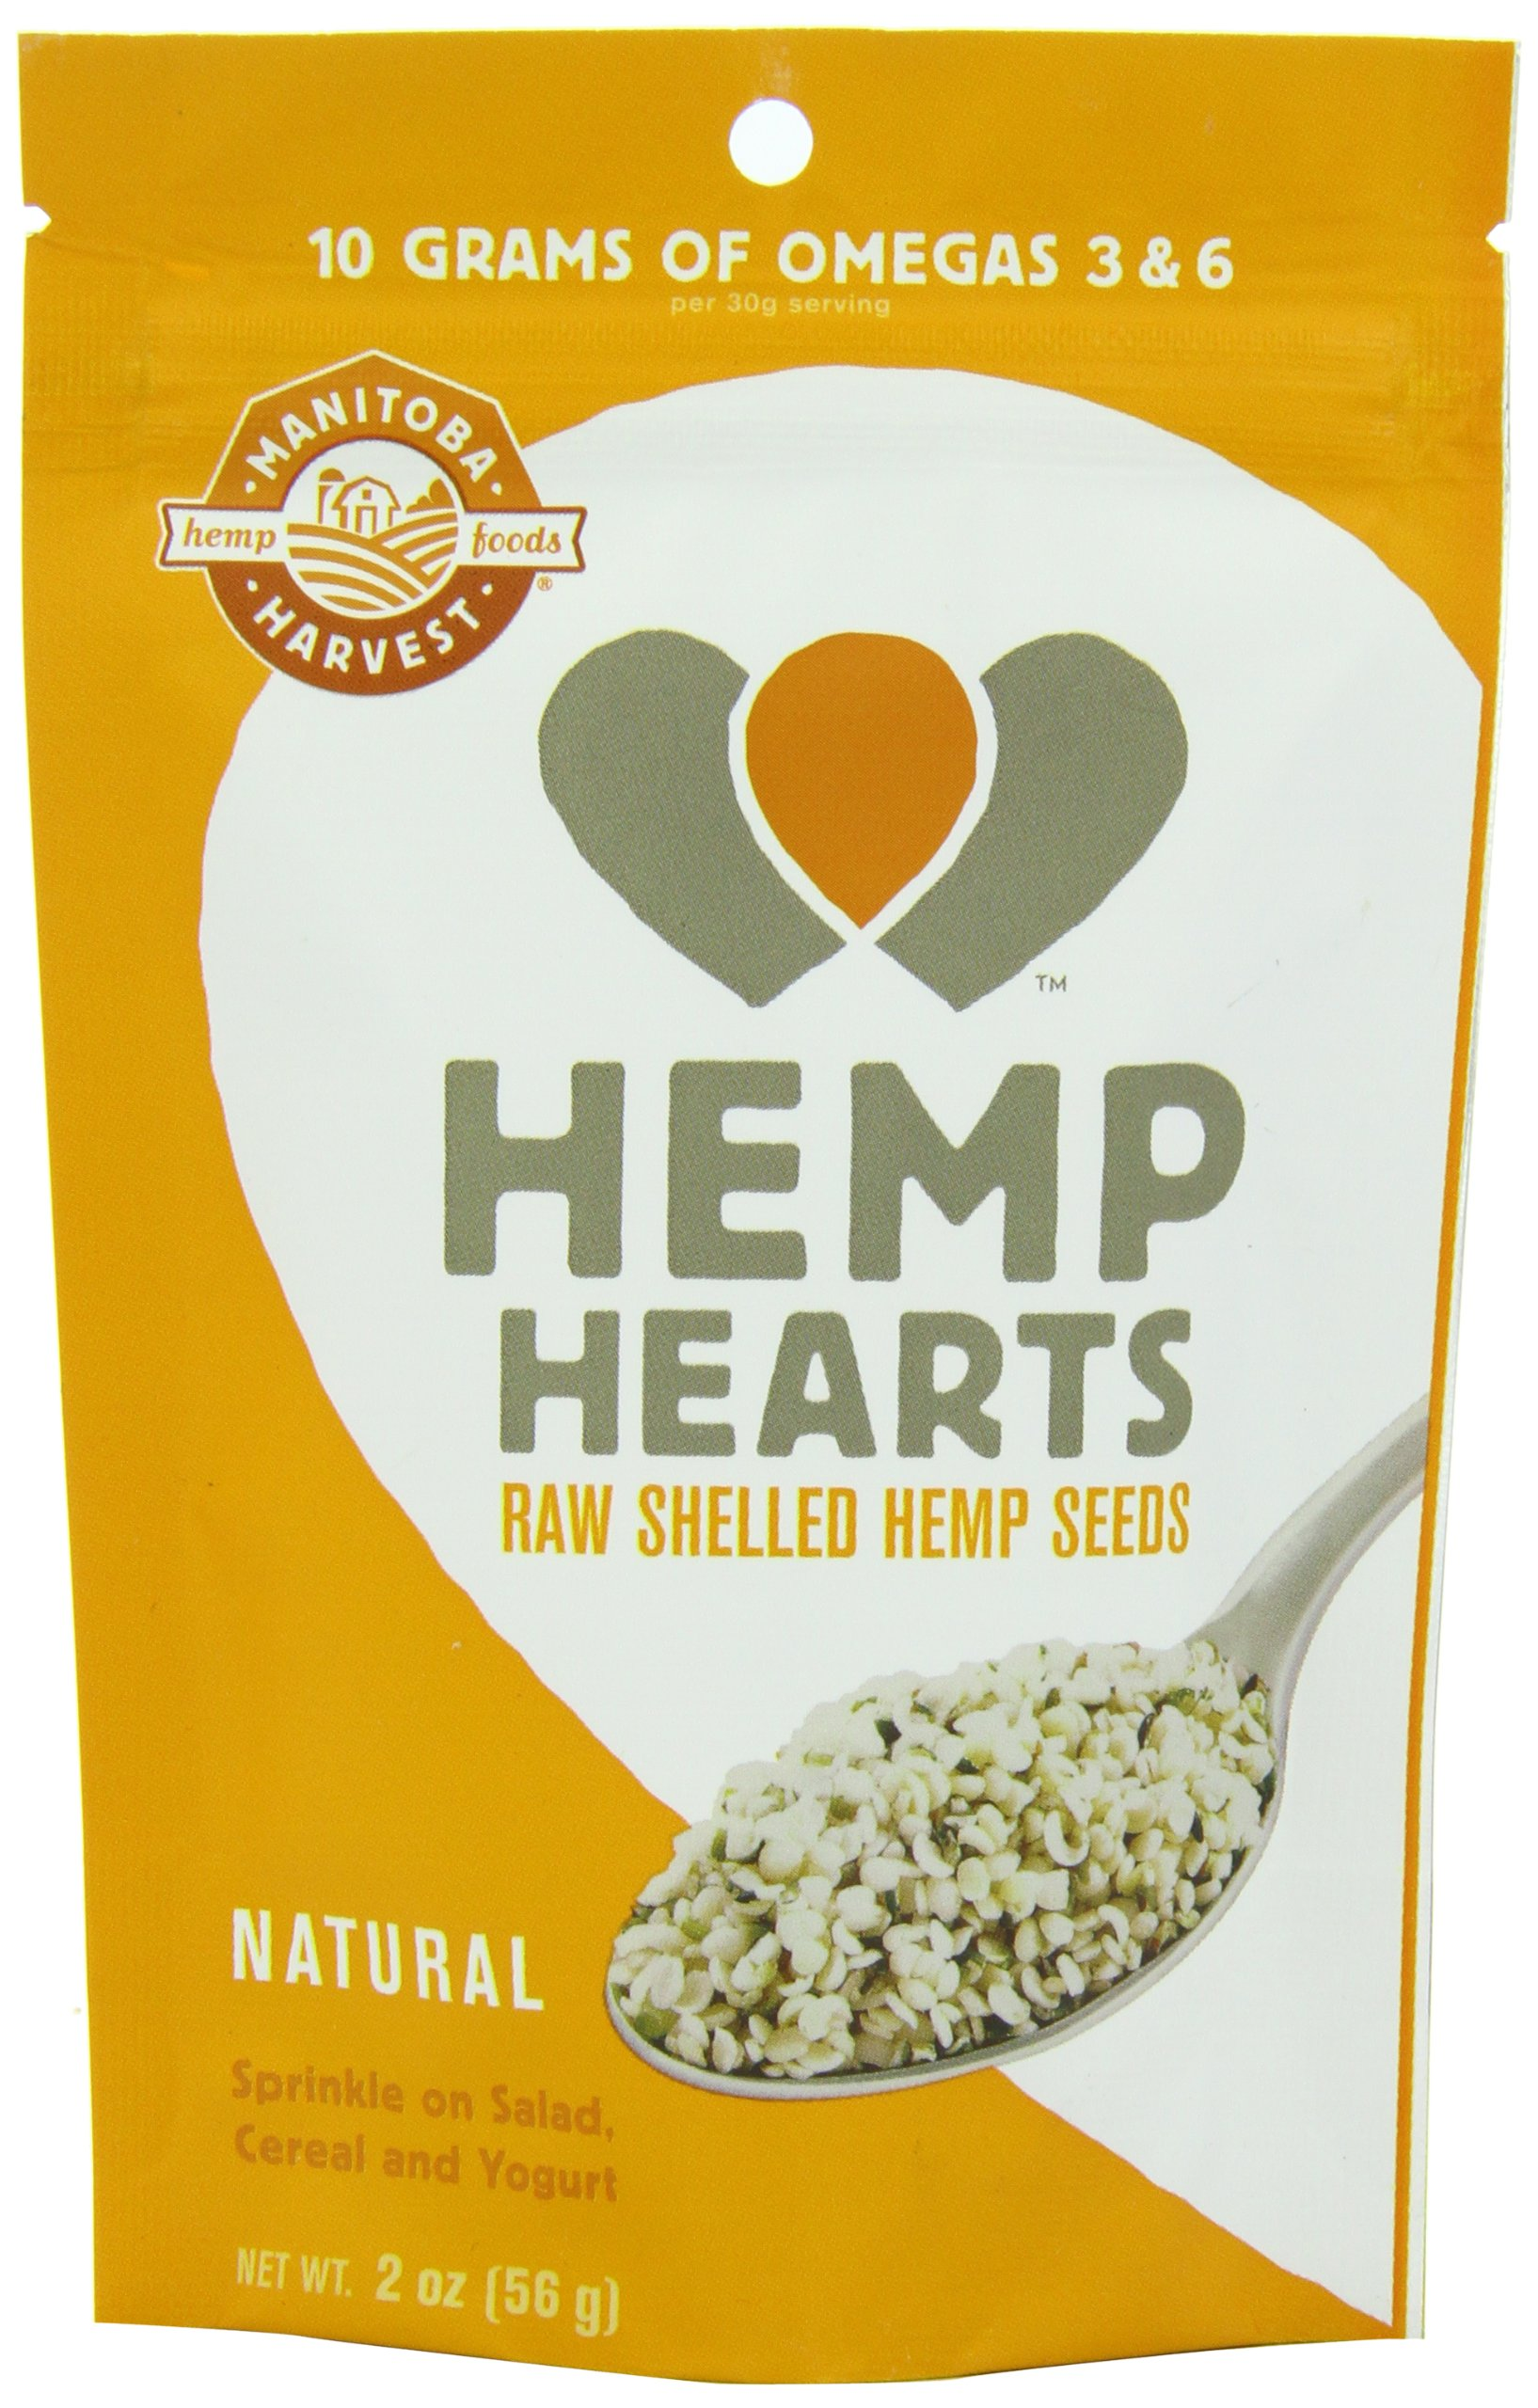 Manitoba Harvest Hemp Hearts Raw Shelled Hemp Seeds, 2oz (Pack of 12); with 10g Protein & Omegas per Serving, Non-GMO, Gluten Free